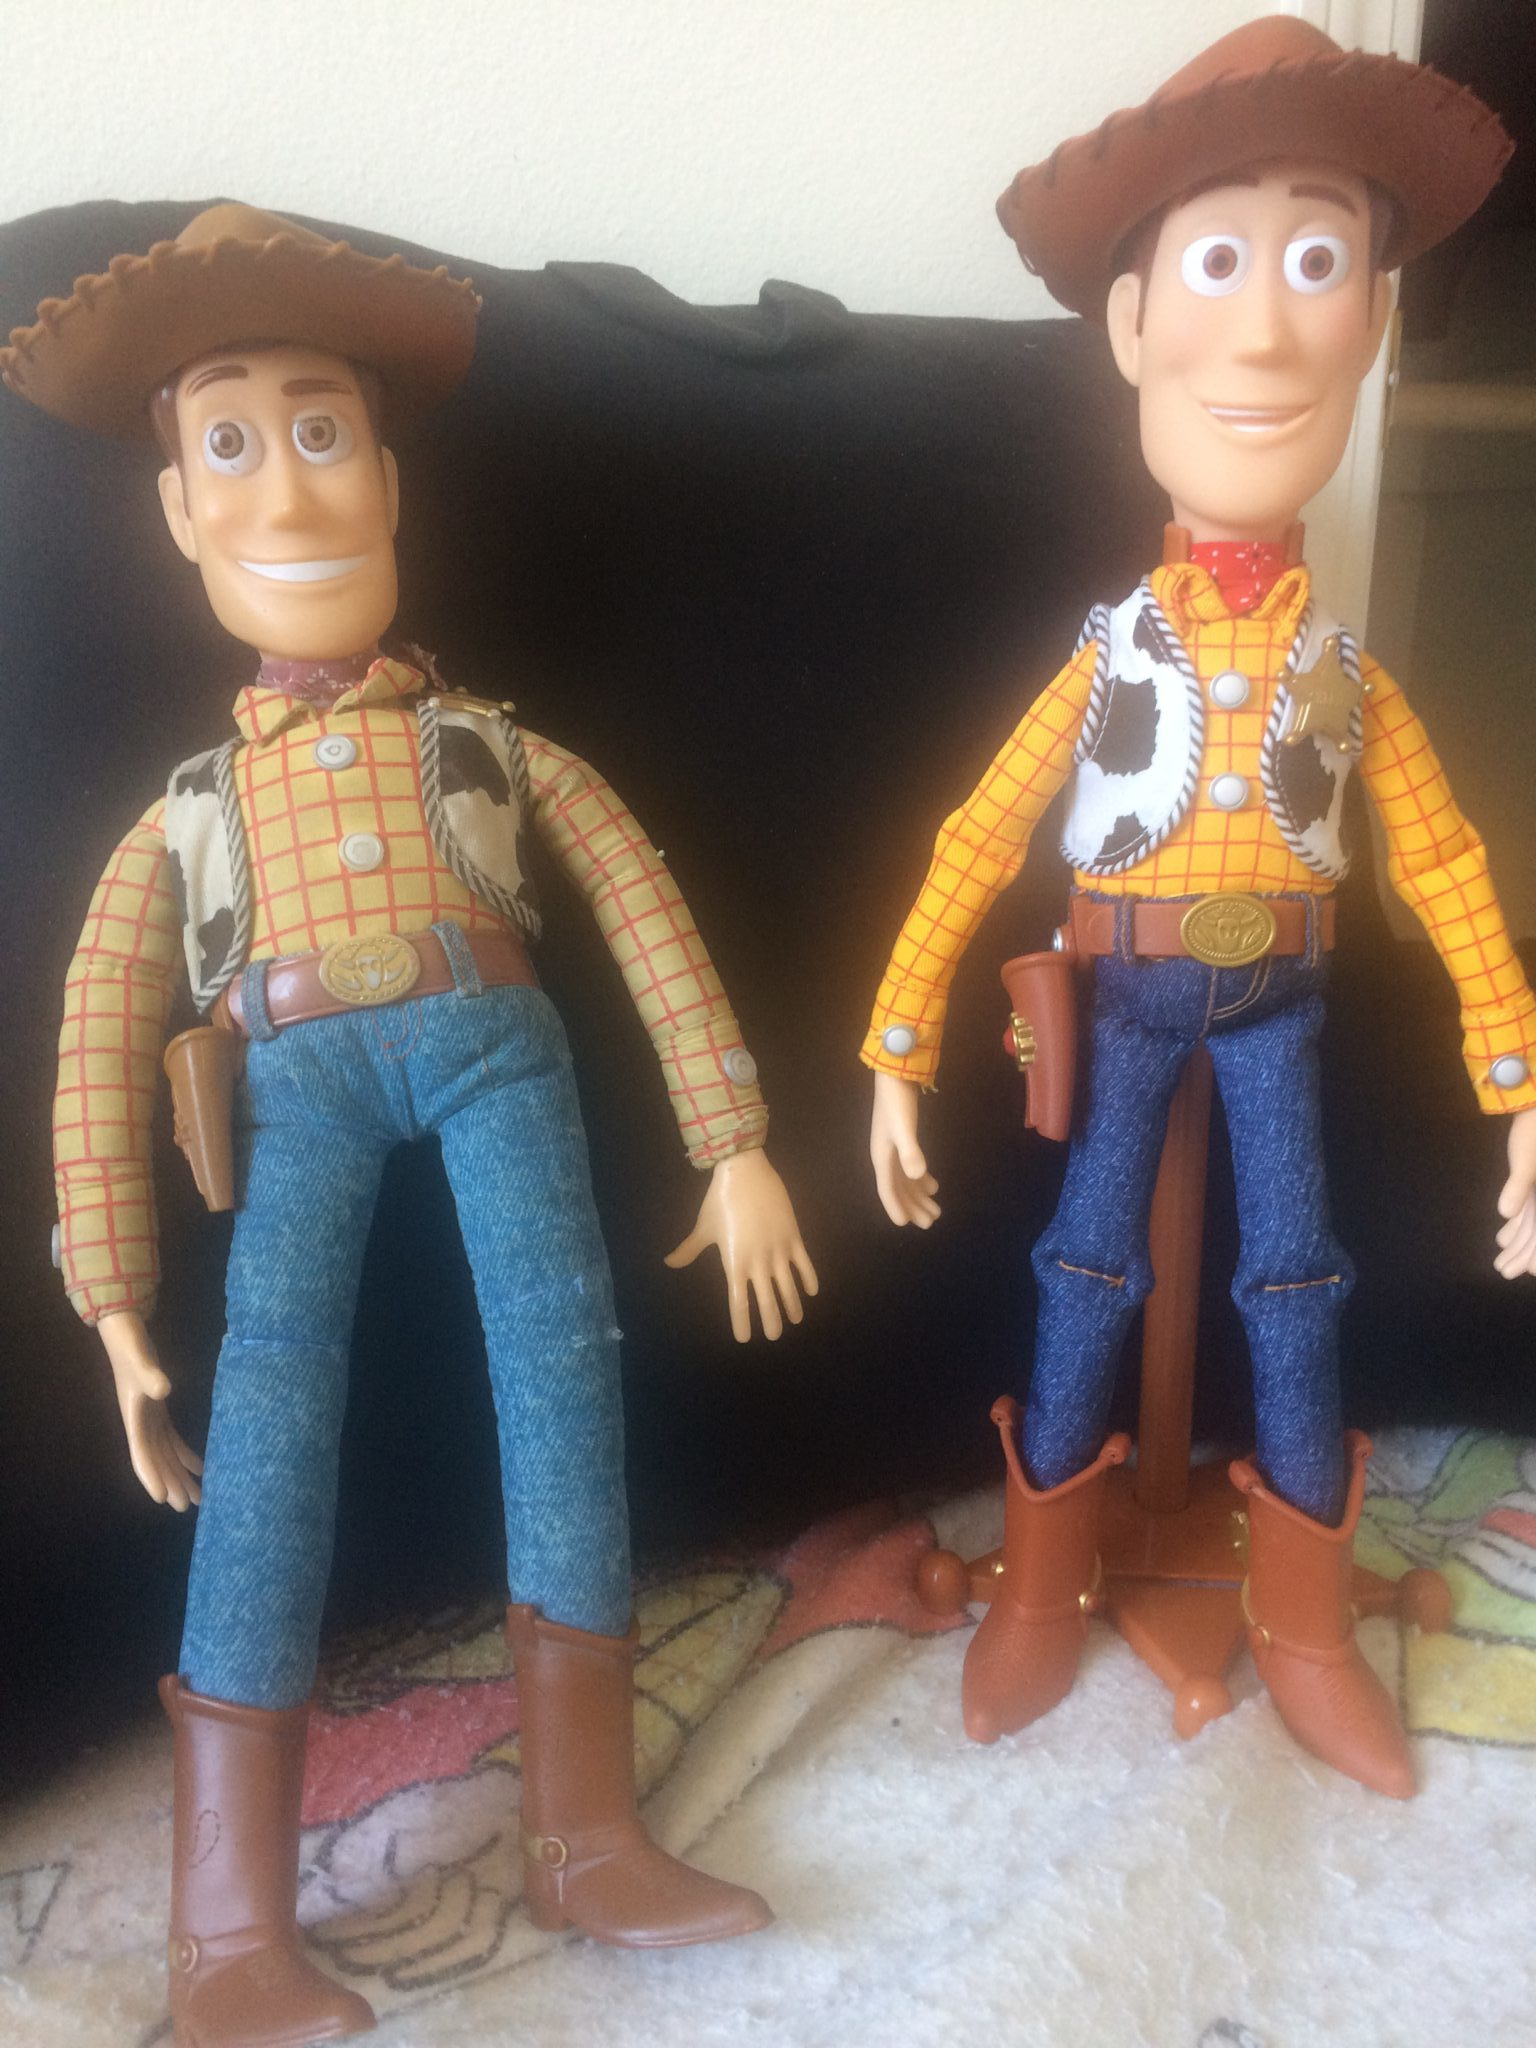 Toy Story Toys Vintage Top 5 Most Expensive Woody Dolls Tips From The Disney